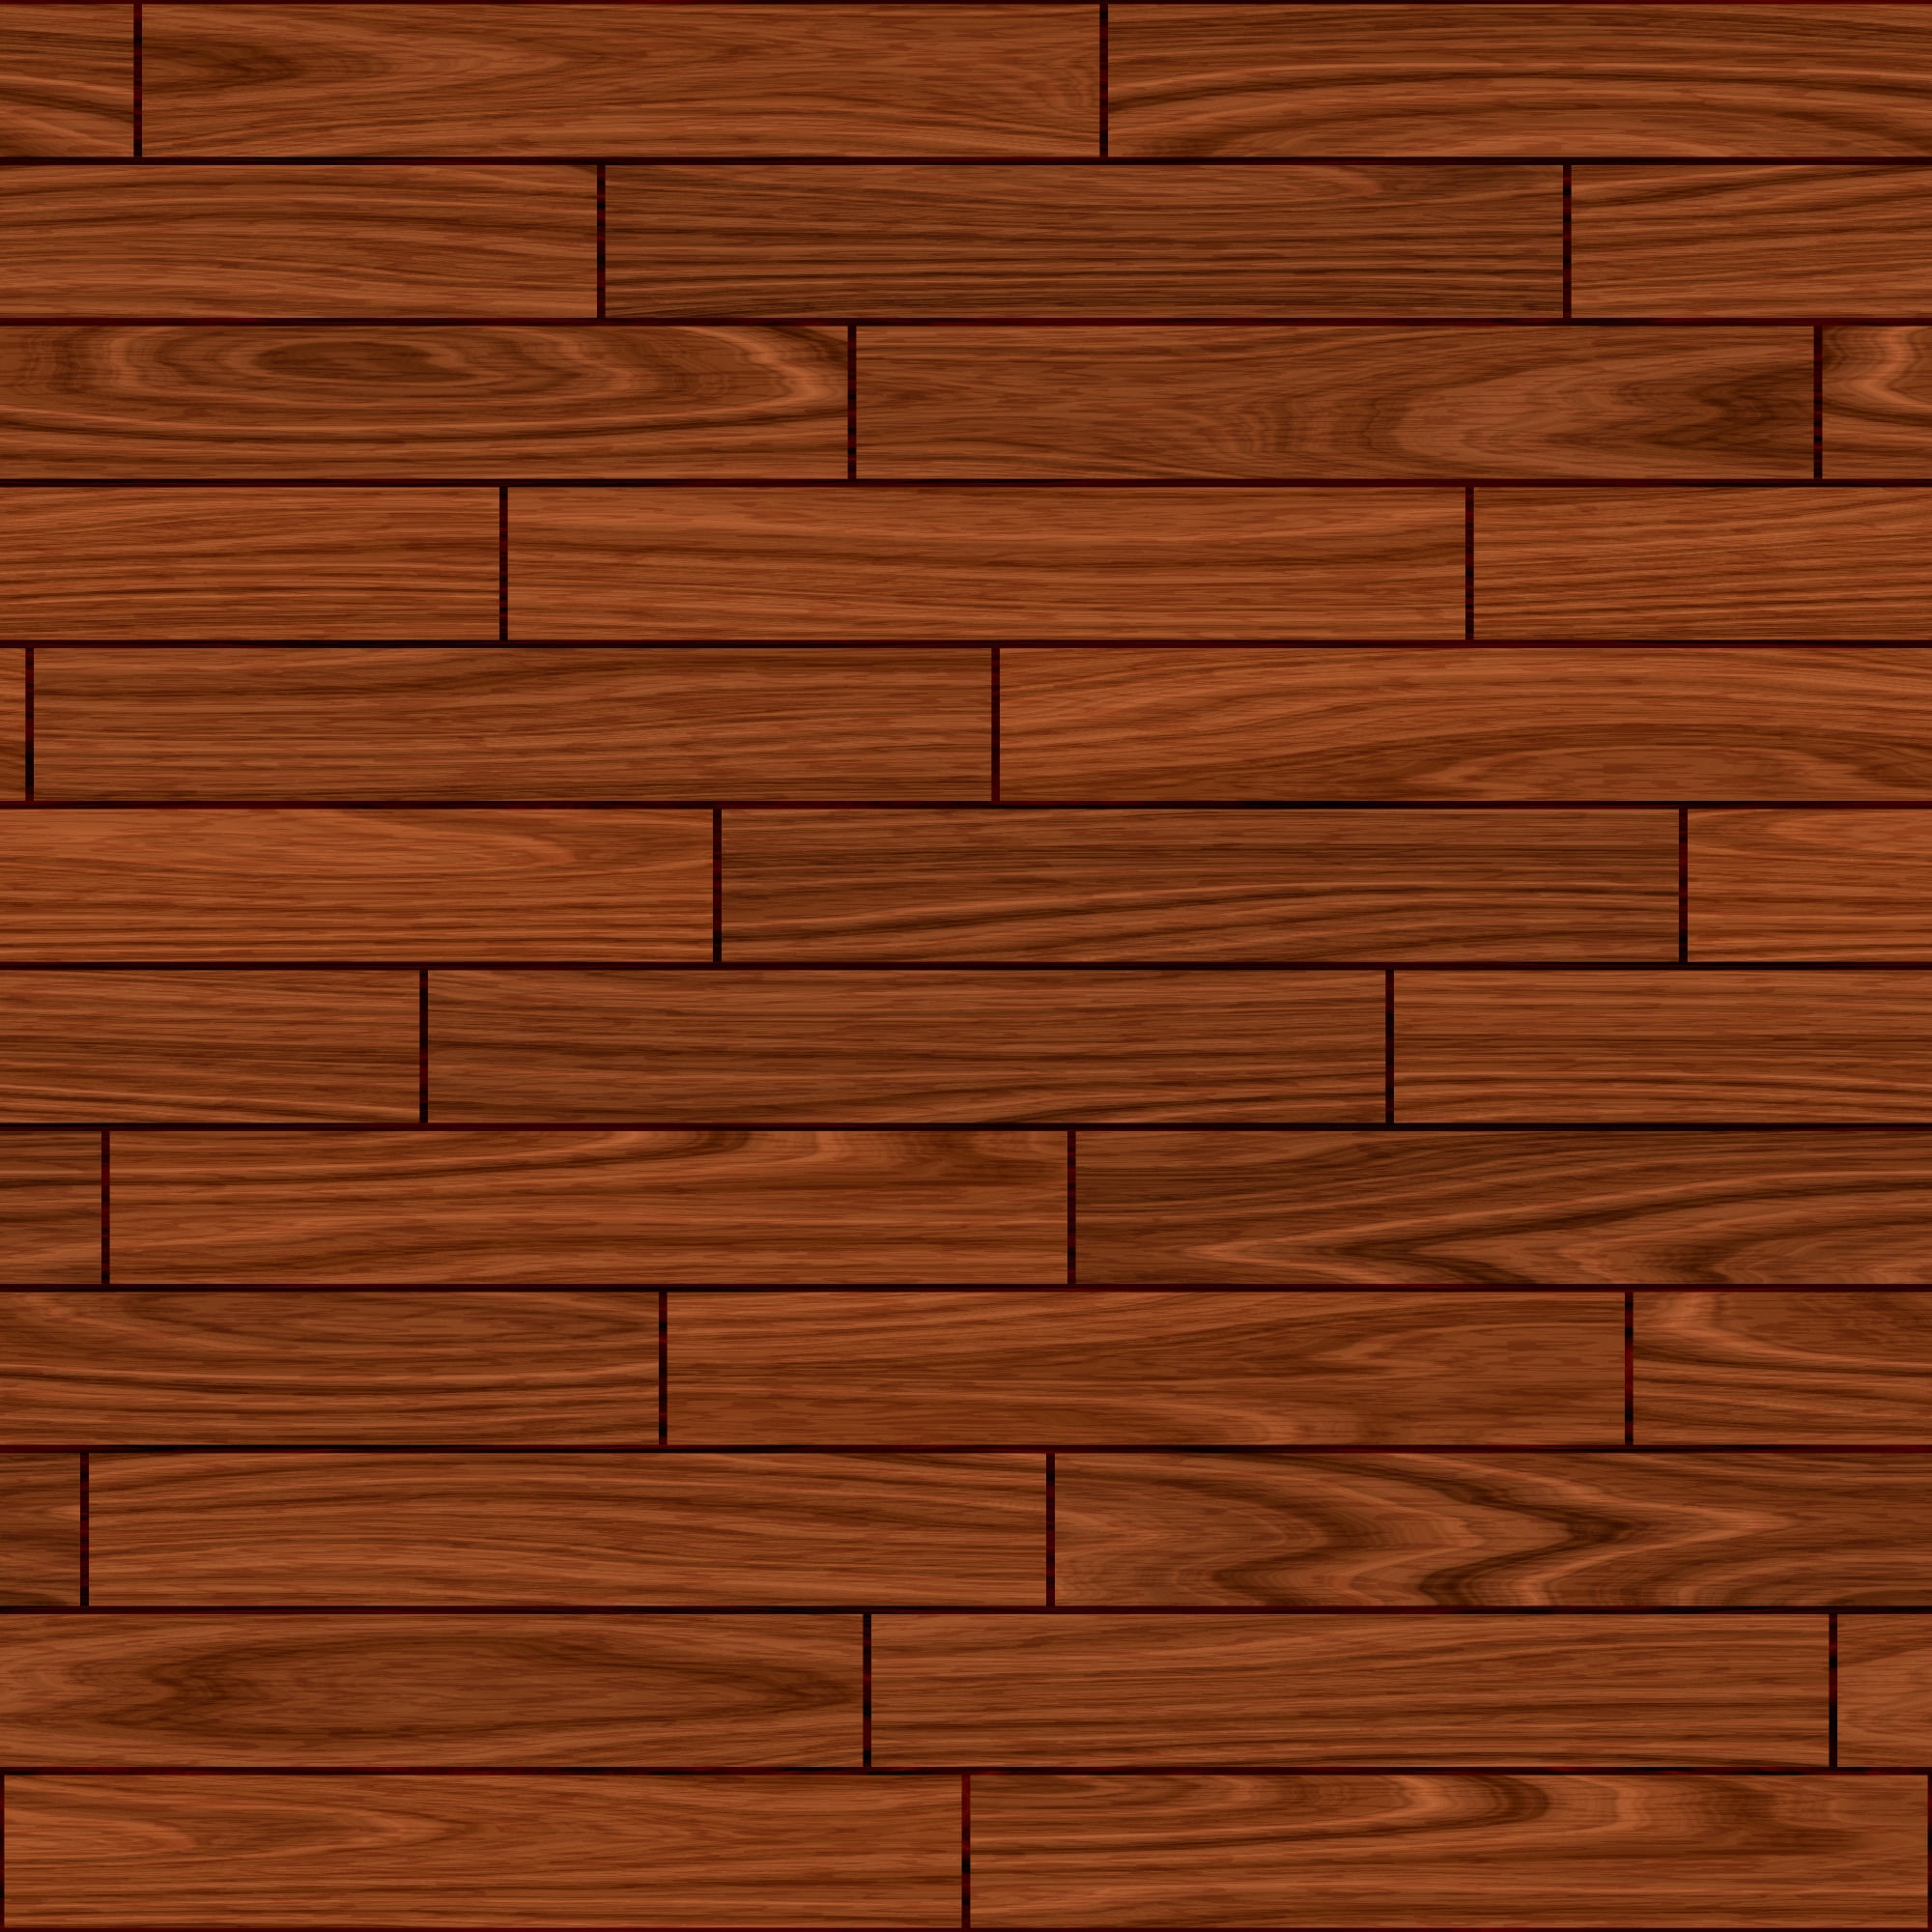 Wood Texture For Elevation : Seamless wood textures design trends